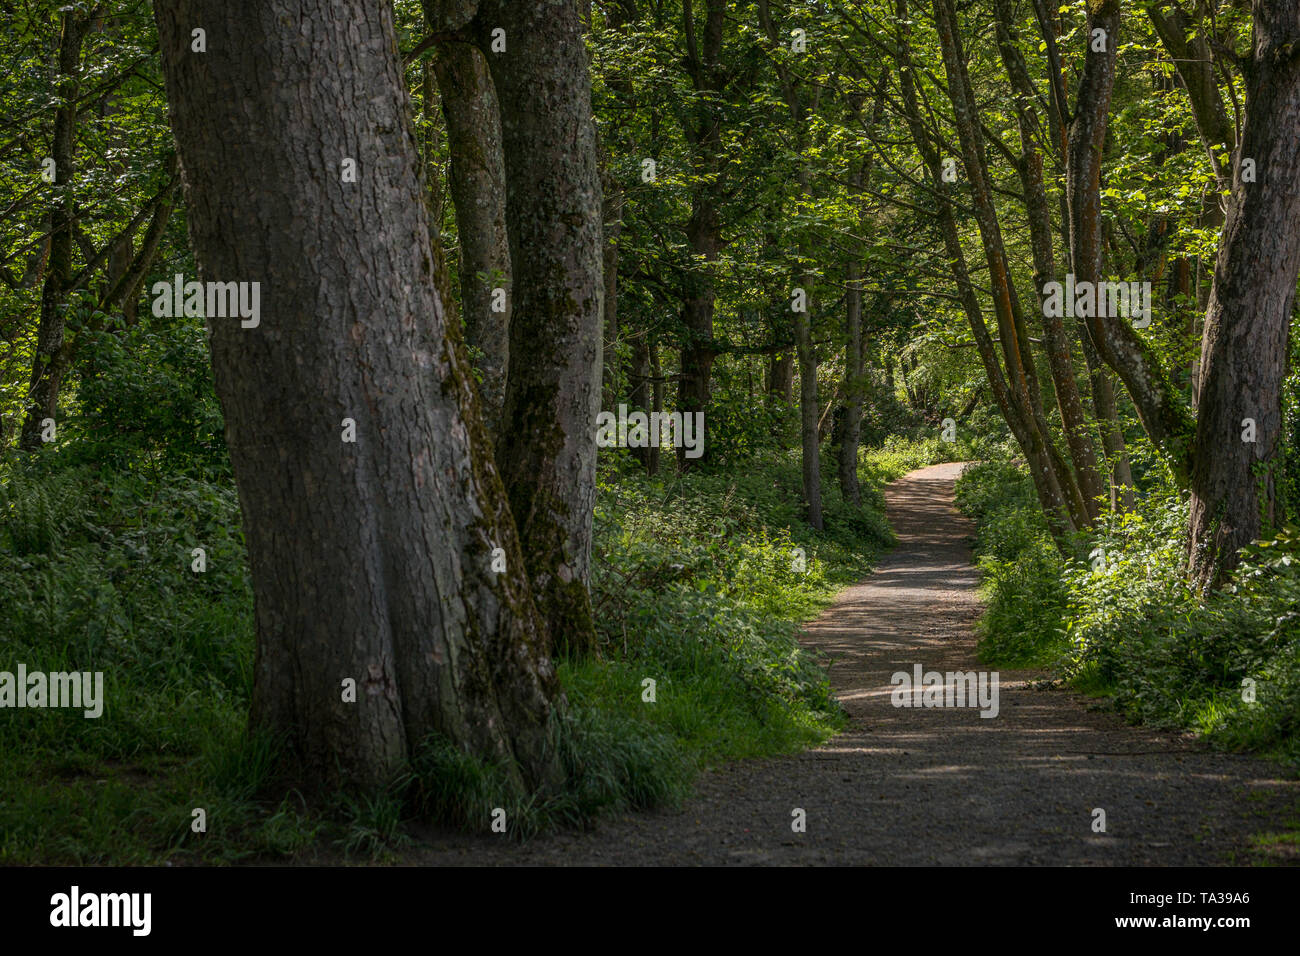 The fairy glen footpaths of Fullerton Park in Troon Scotland - Stock Image